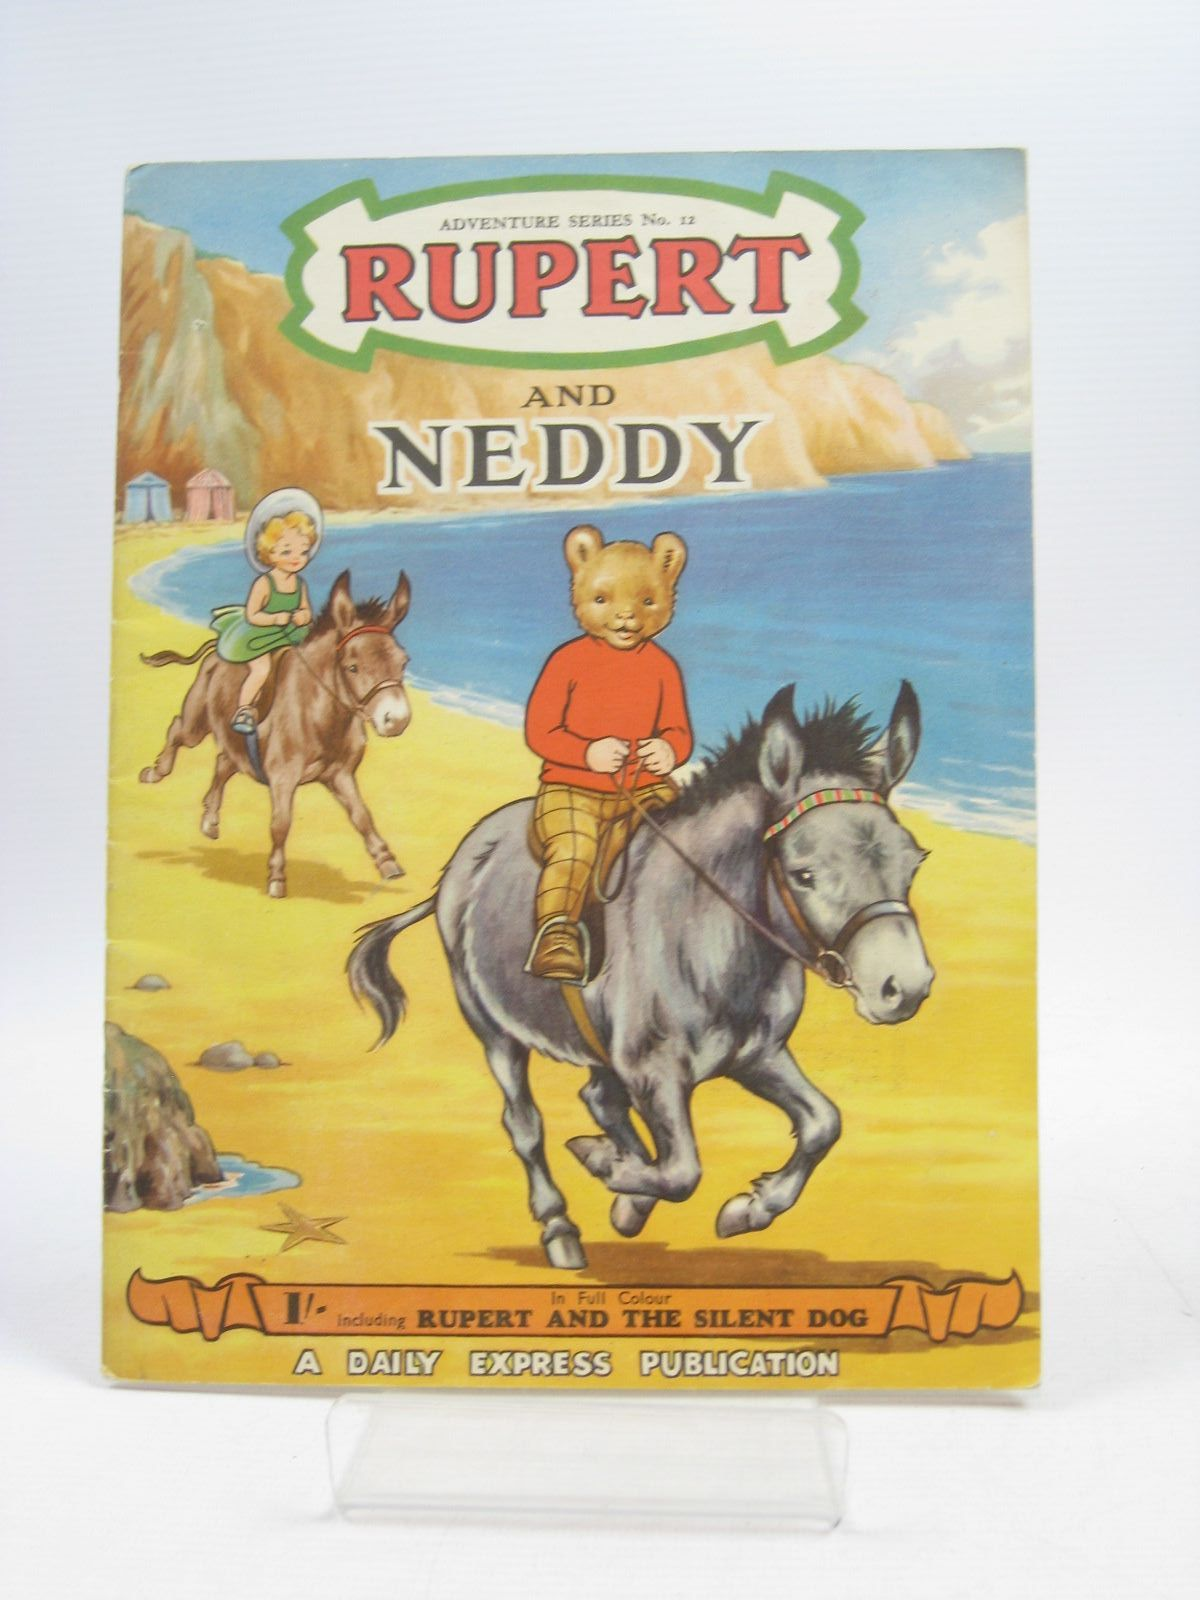 Photo of RUPERT ADVENTURE SERIES No. 12 - RUPERT AND NEDDY written by Bestall, Alfred illustrated by Ash, Enid Bestall, Alfred published by Daily Express (STOCK CODE: 1403907)  for sale by Stella & Rose's Books